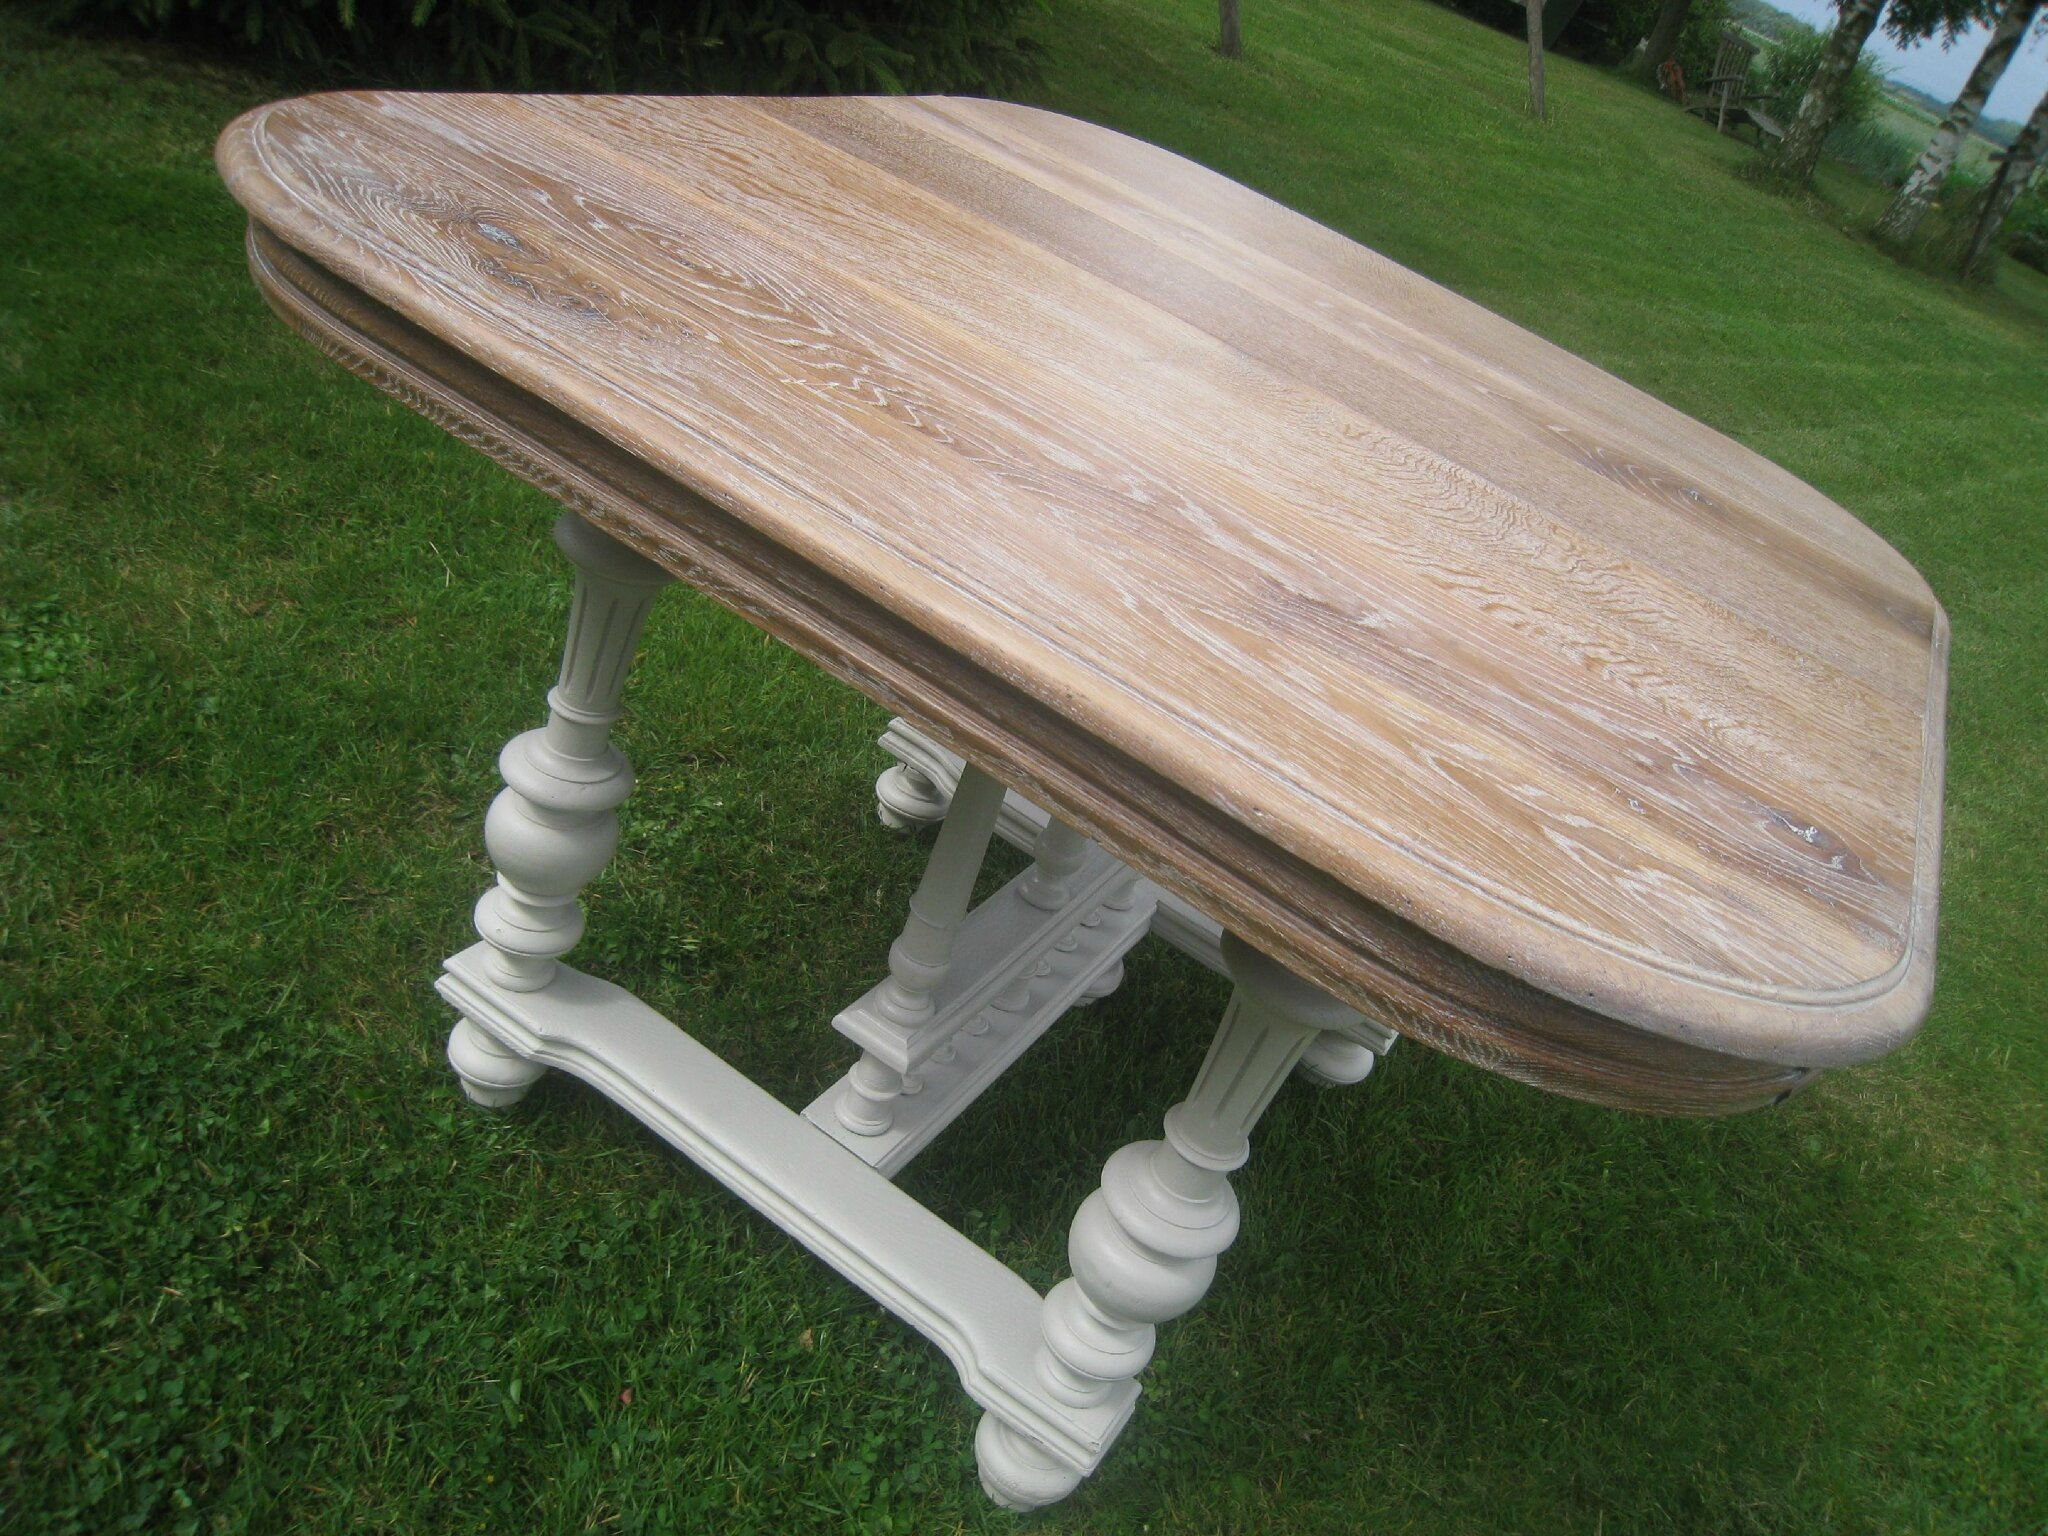 Les tables henri ii revisit es patines couleurs - Vieille table en bois ...